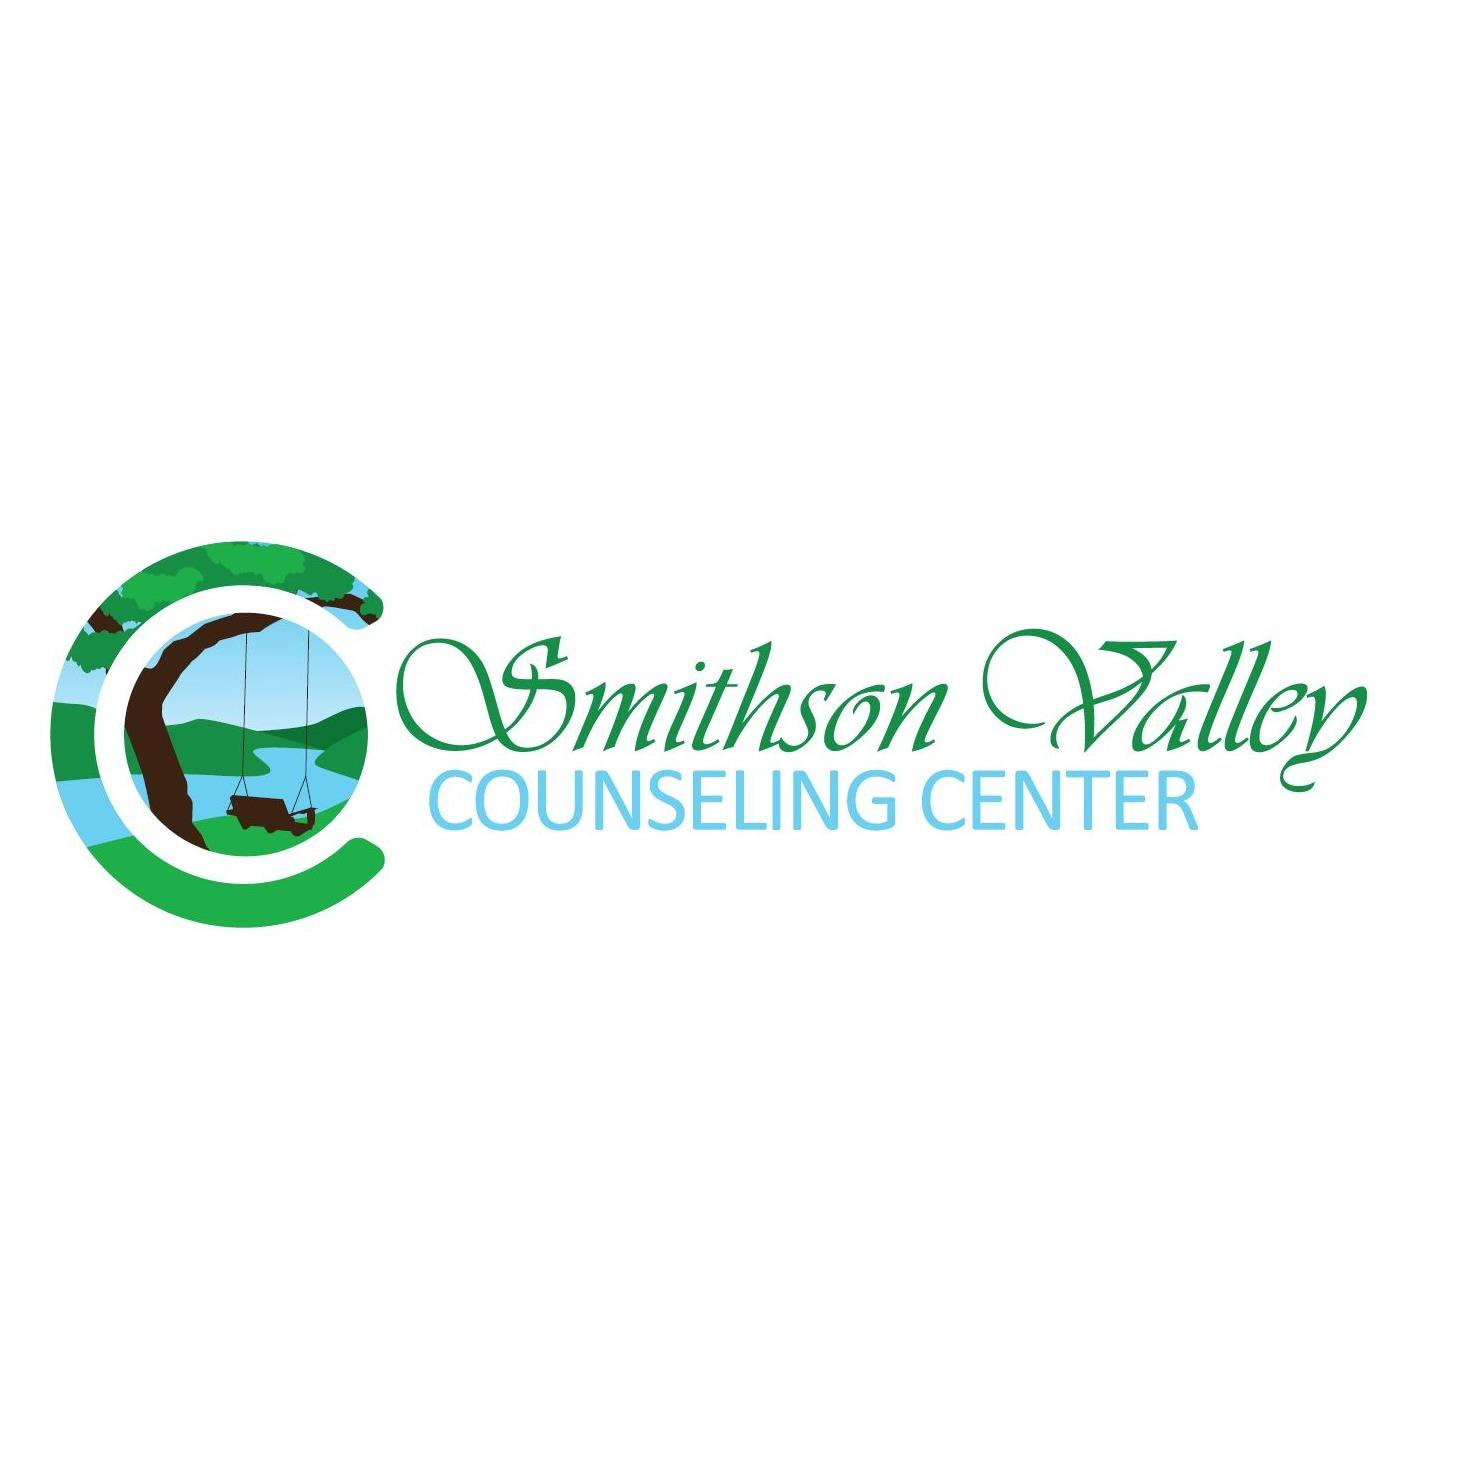 Smithson Valley Counseling Center image 1